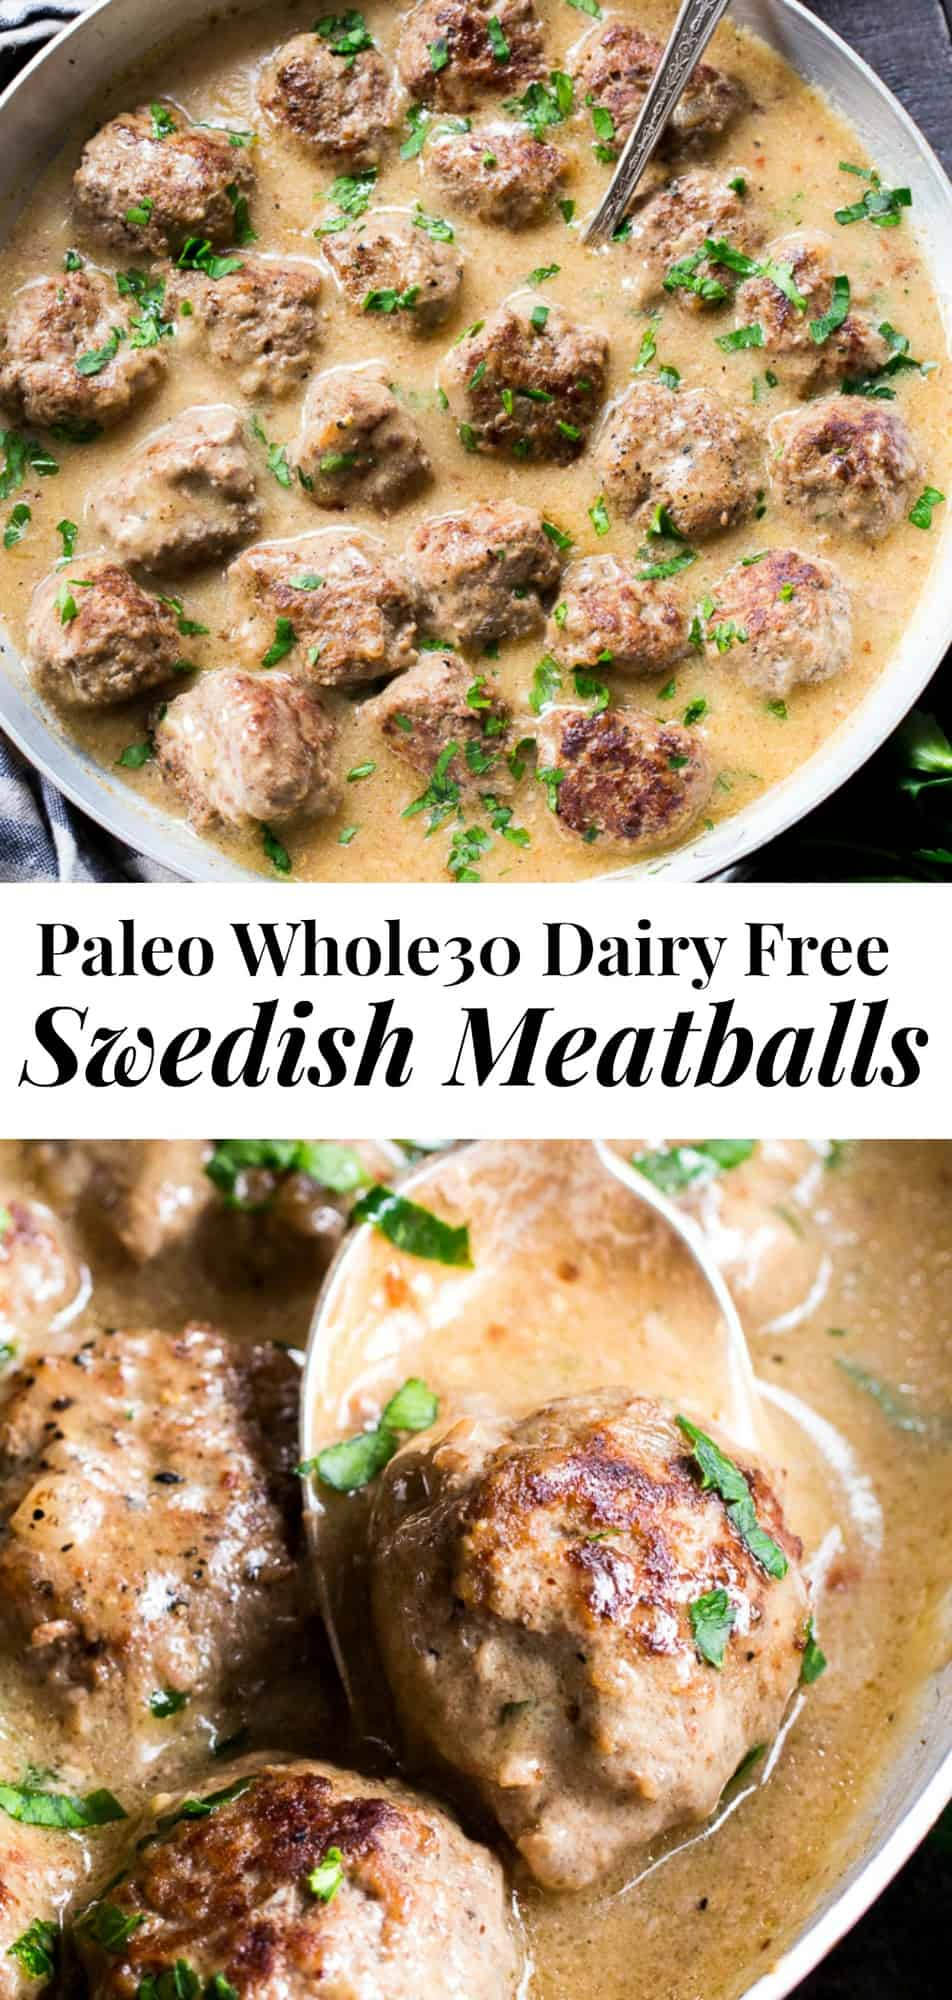 These Paleo Swedish meatballs in a creamy gravy, with dairy-free, Whole30 friendly mashed potatoes are pure comfort food for cold nights.  Made with real-food ingredients, gluten-free, dairy-free, family approved and the meatballs are made in one skillet! #whole30 #paleo #cleaneating